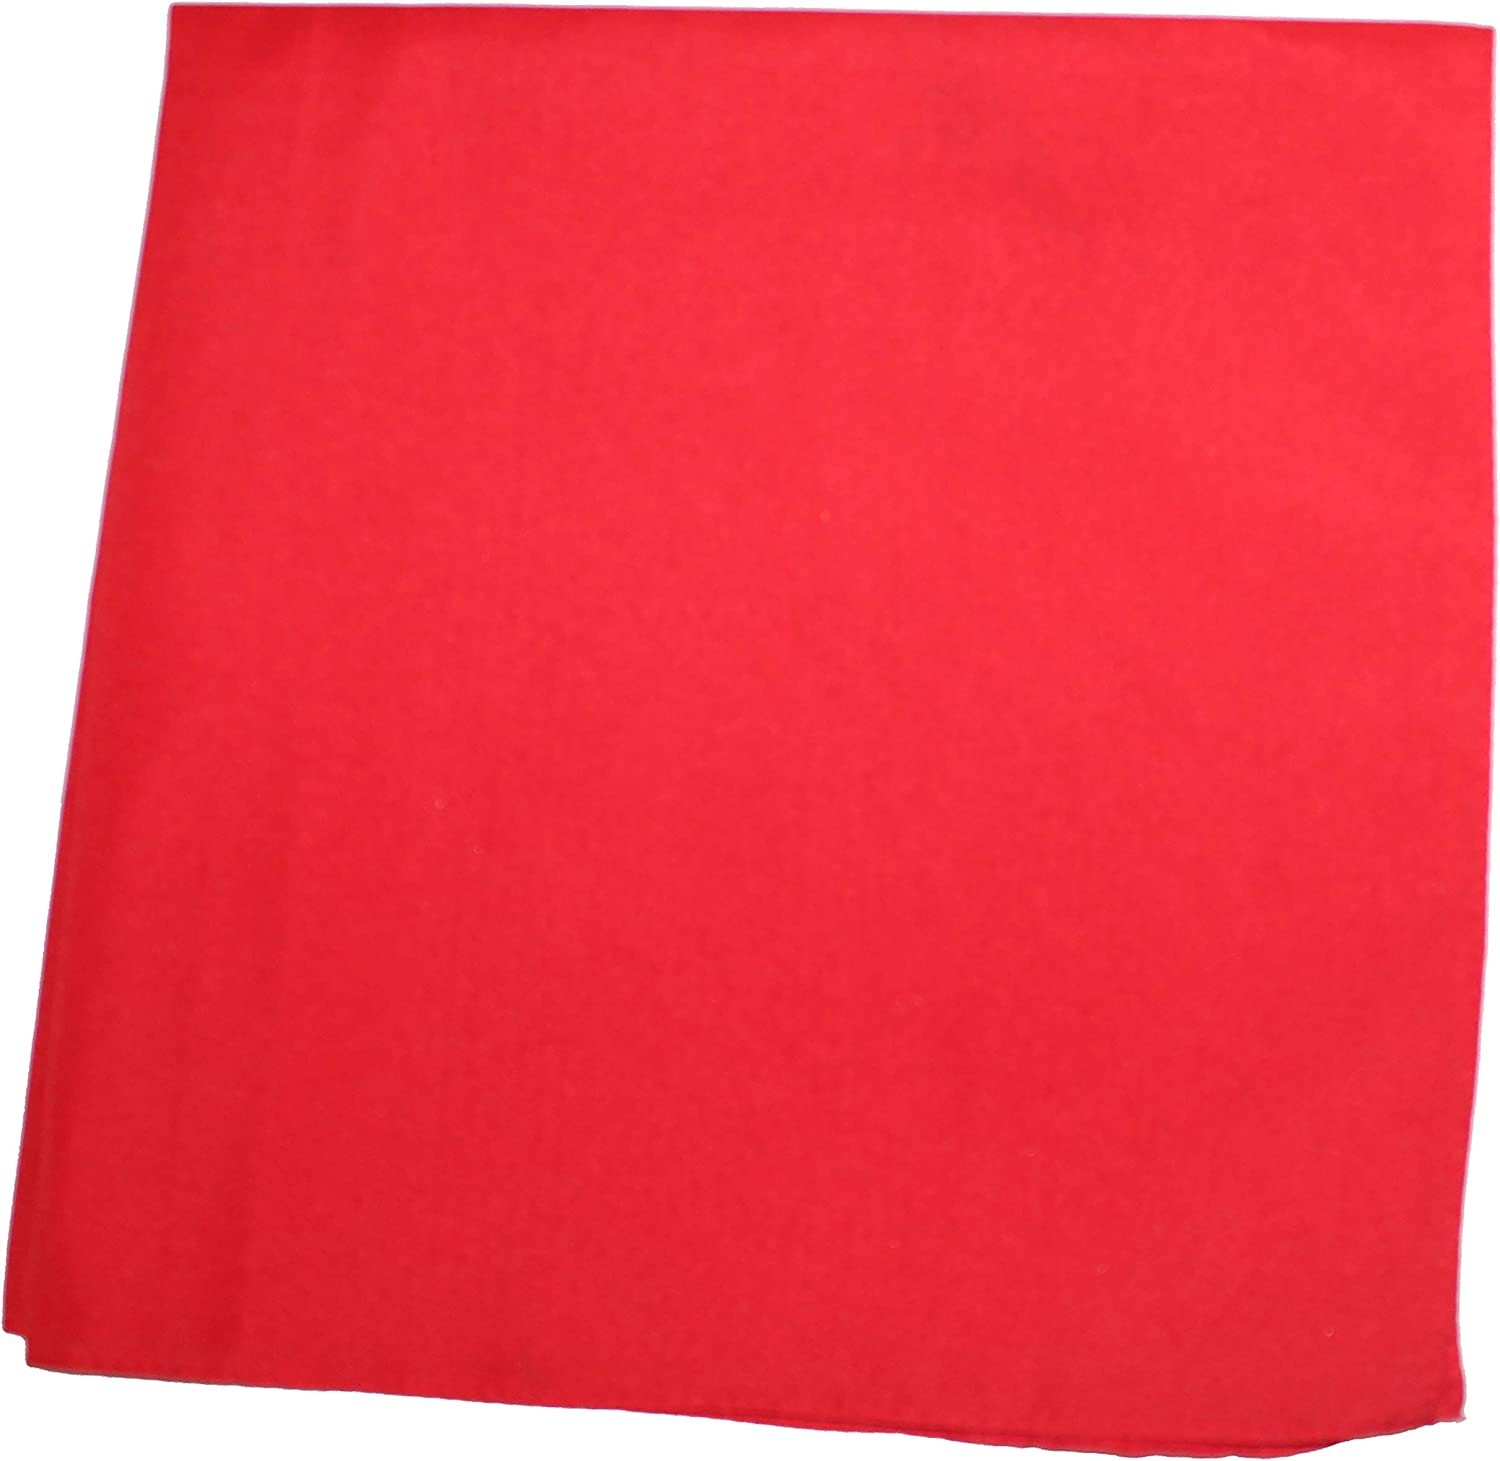 Mechaly Solid Colors 100% Cotton Pack Bandana 24 Special price for 5 ☆ popular a limited time -